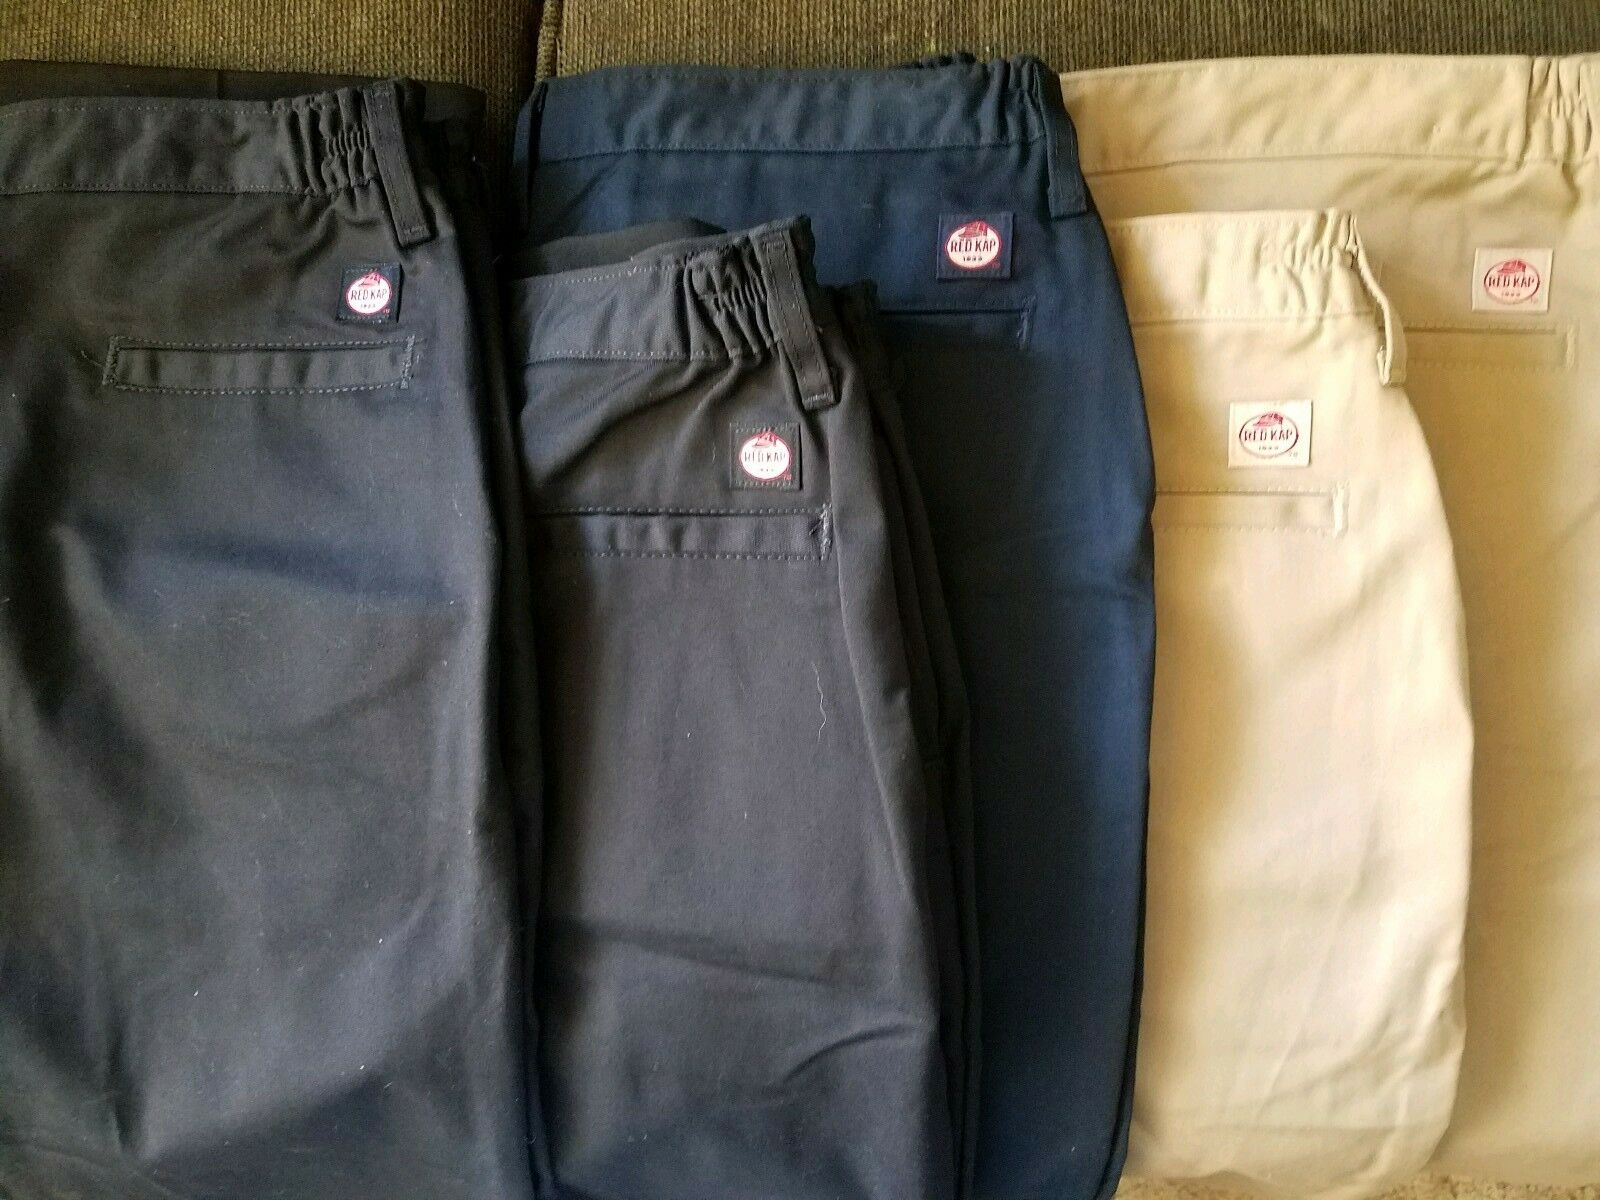 Work pants for women, brand new, Redkap size 18 5-pairs, Pinnacle sz XL 2-pairs